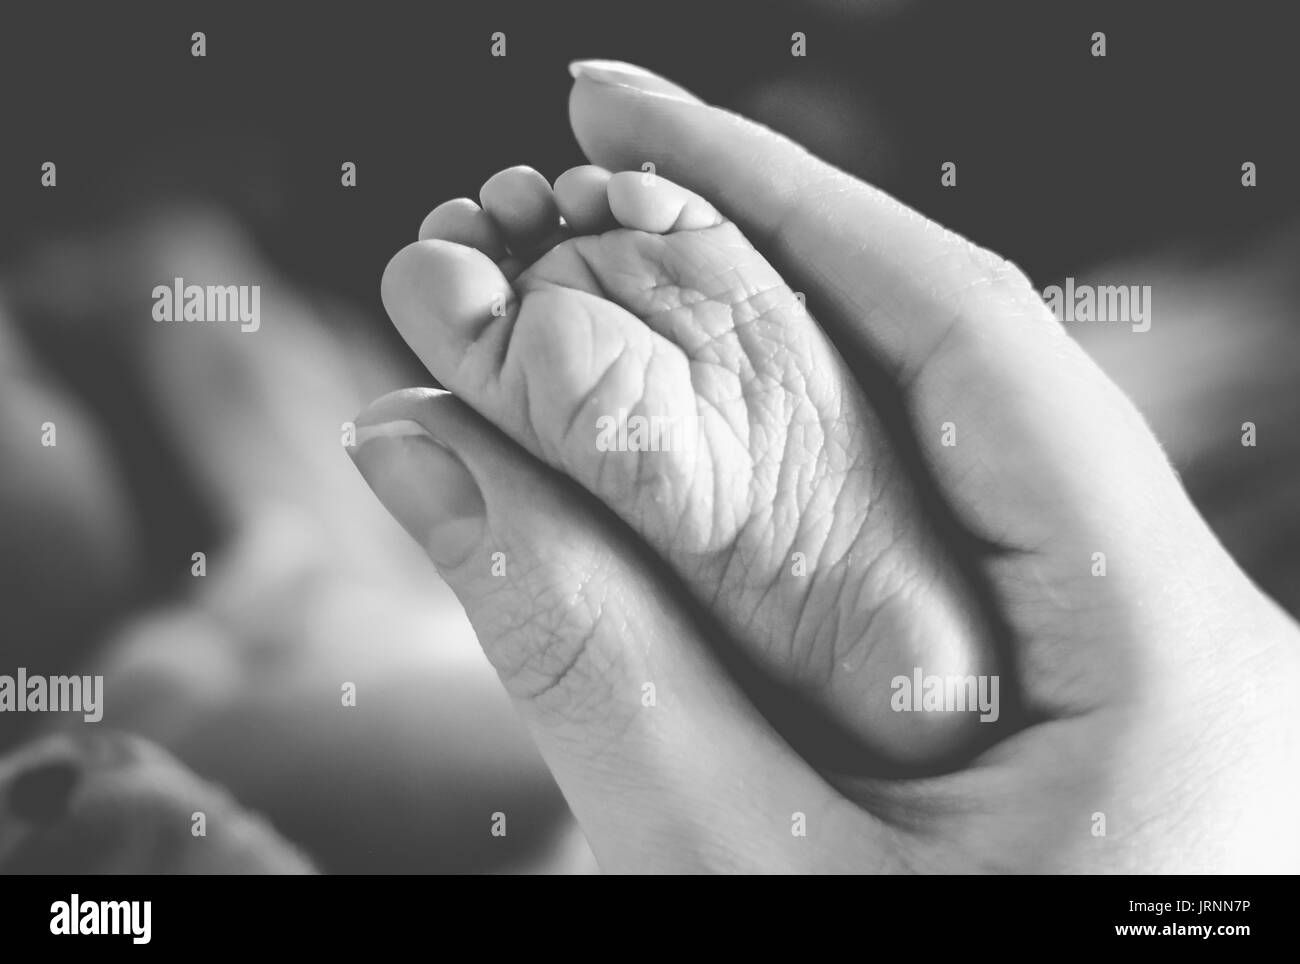 Adult woman holding baby's foot - Stock Image